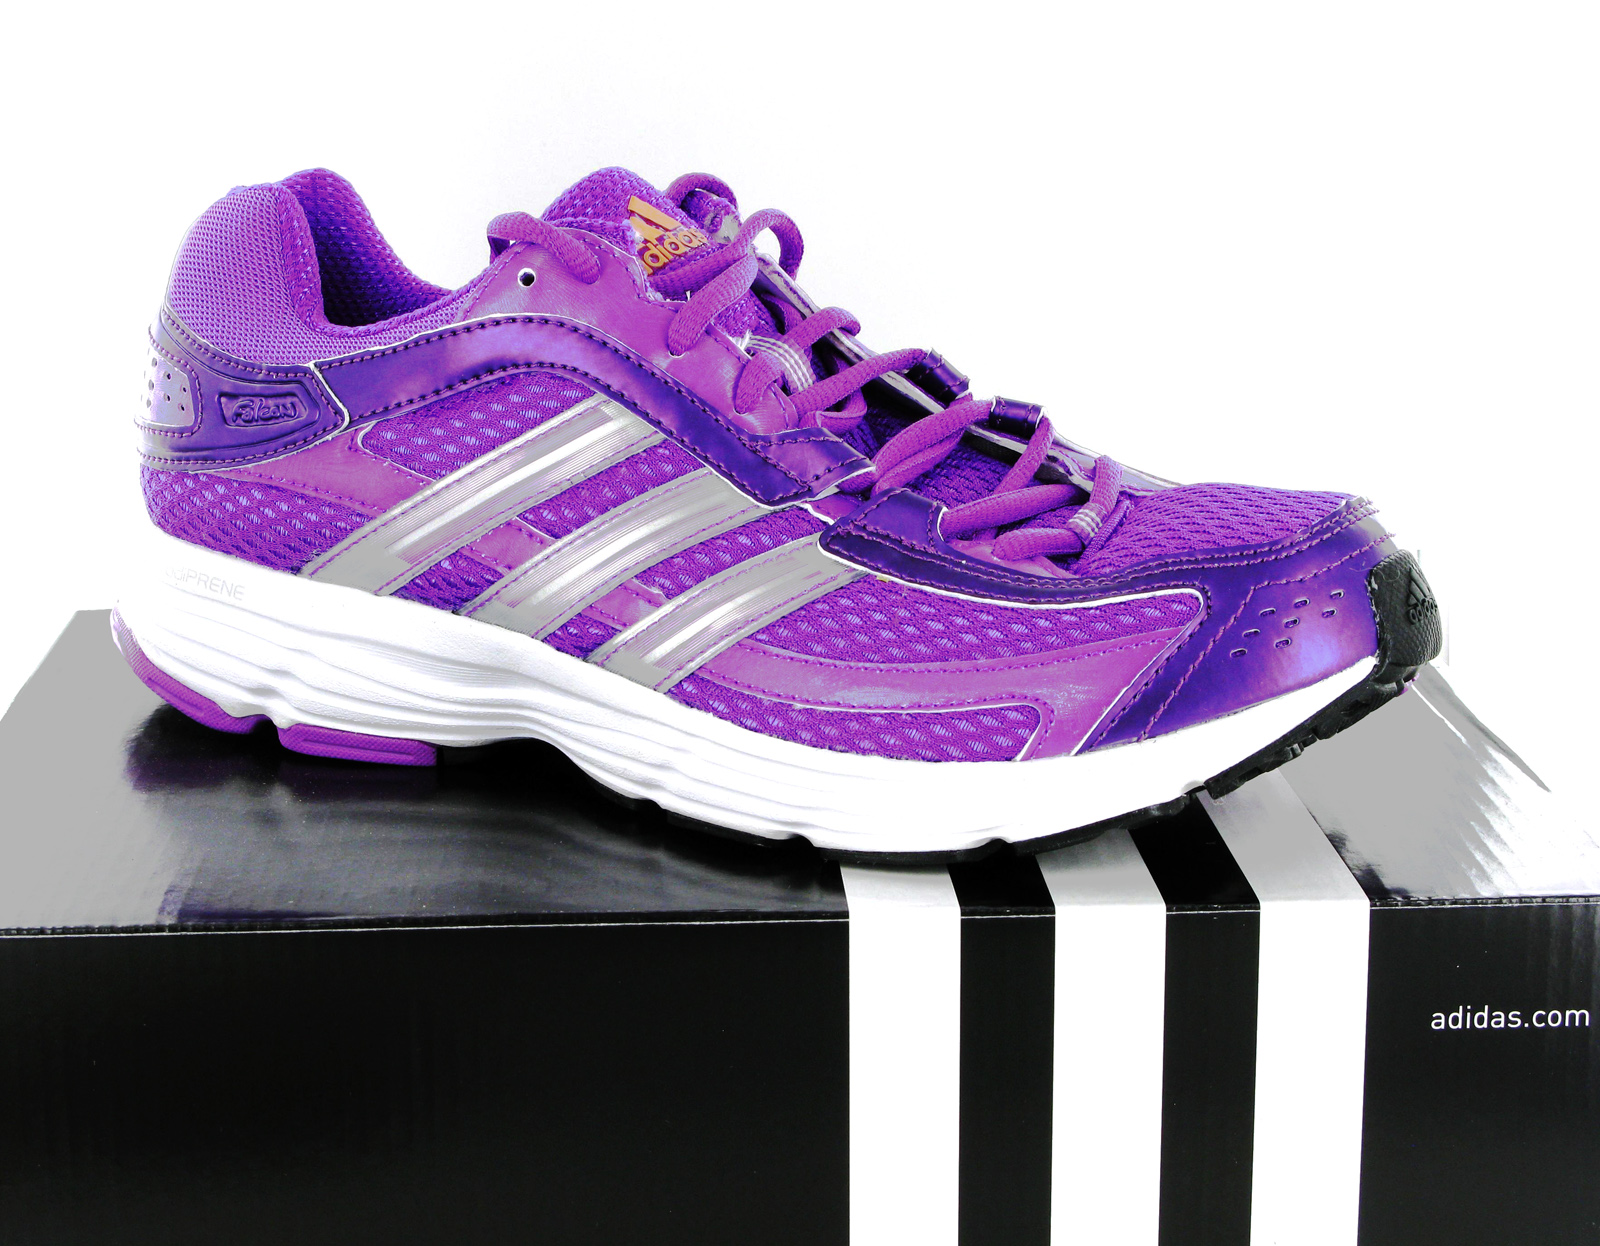 adidas sports trainers